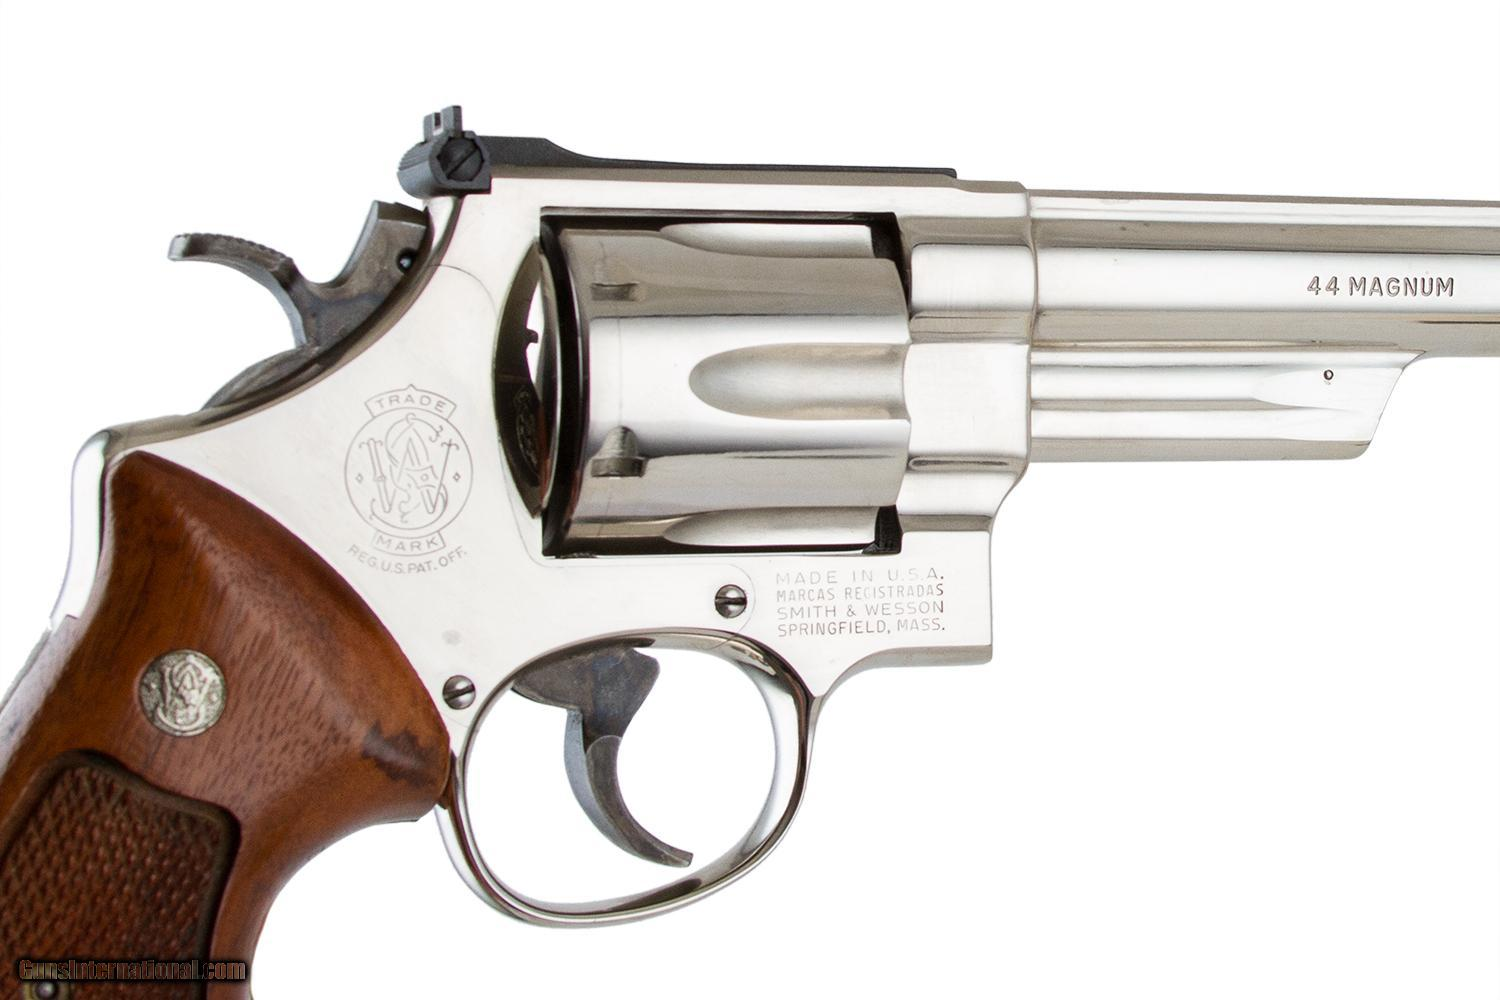 SMITH & WESSON MODEL 29-3 44 MAGNUM